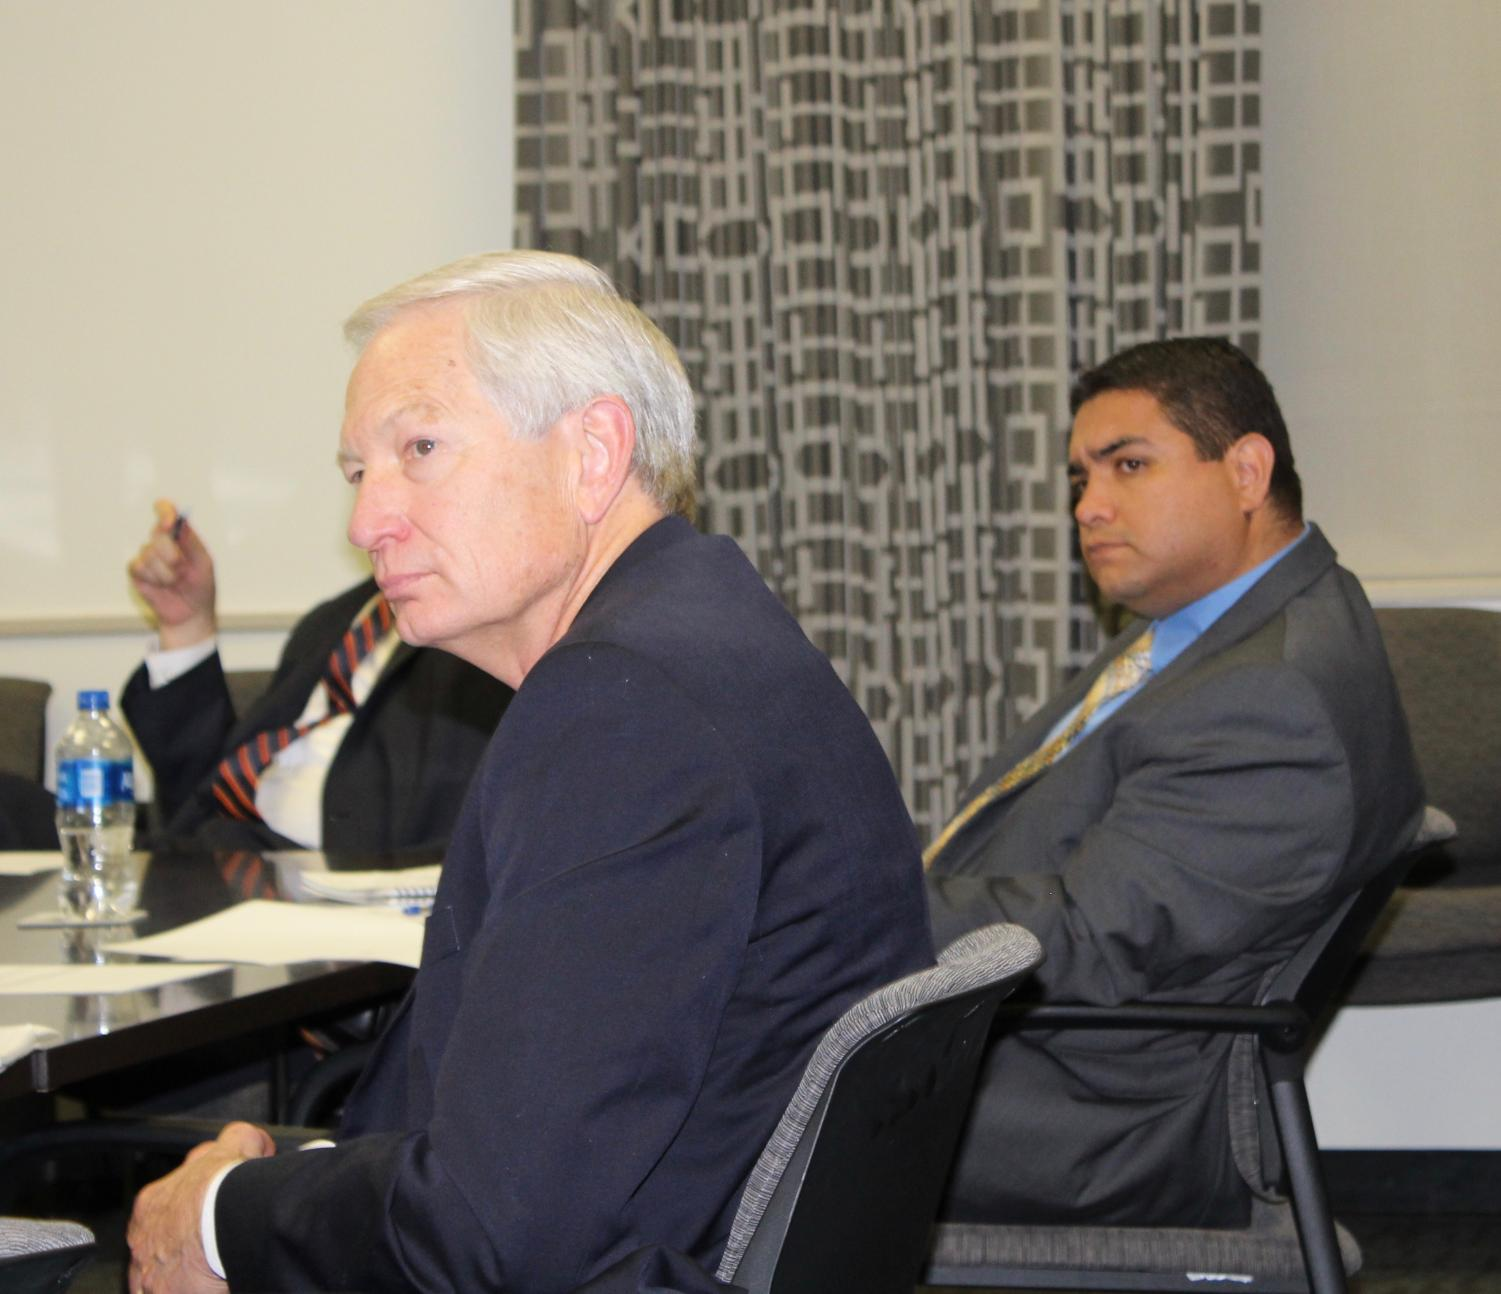 John Lehn (left) and Ray Macareno (right) sit in on a meeting.